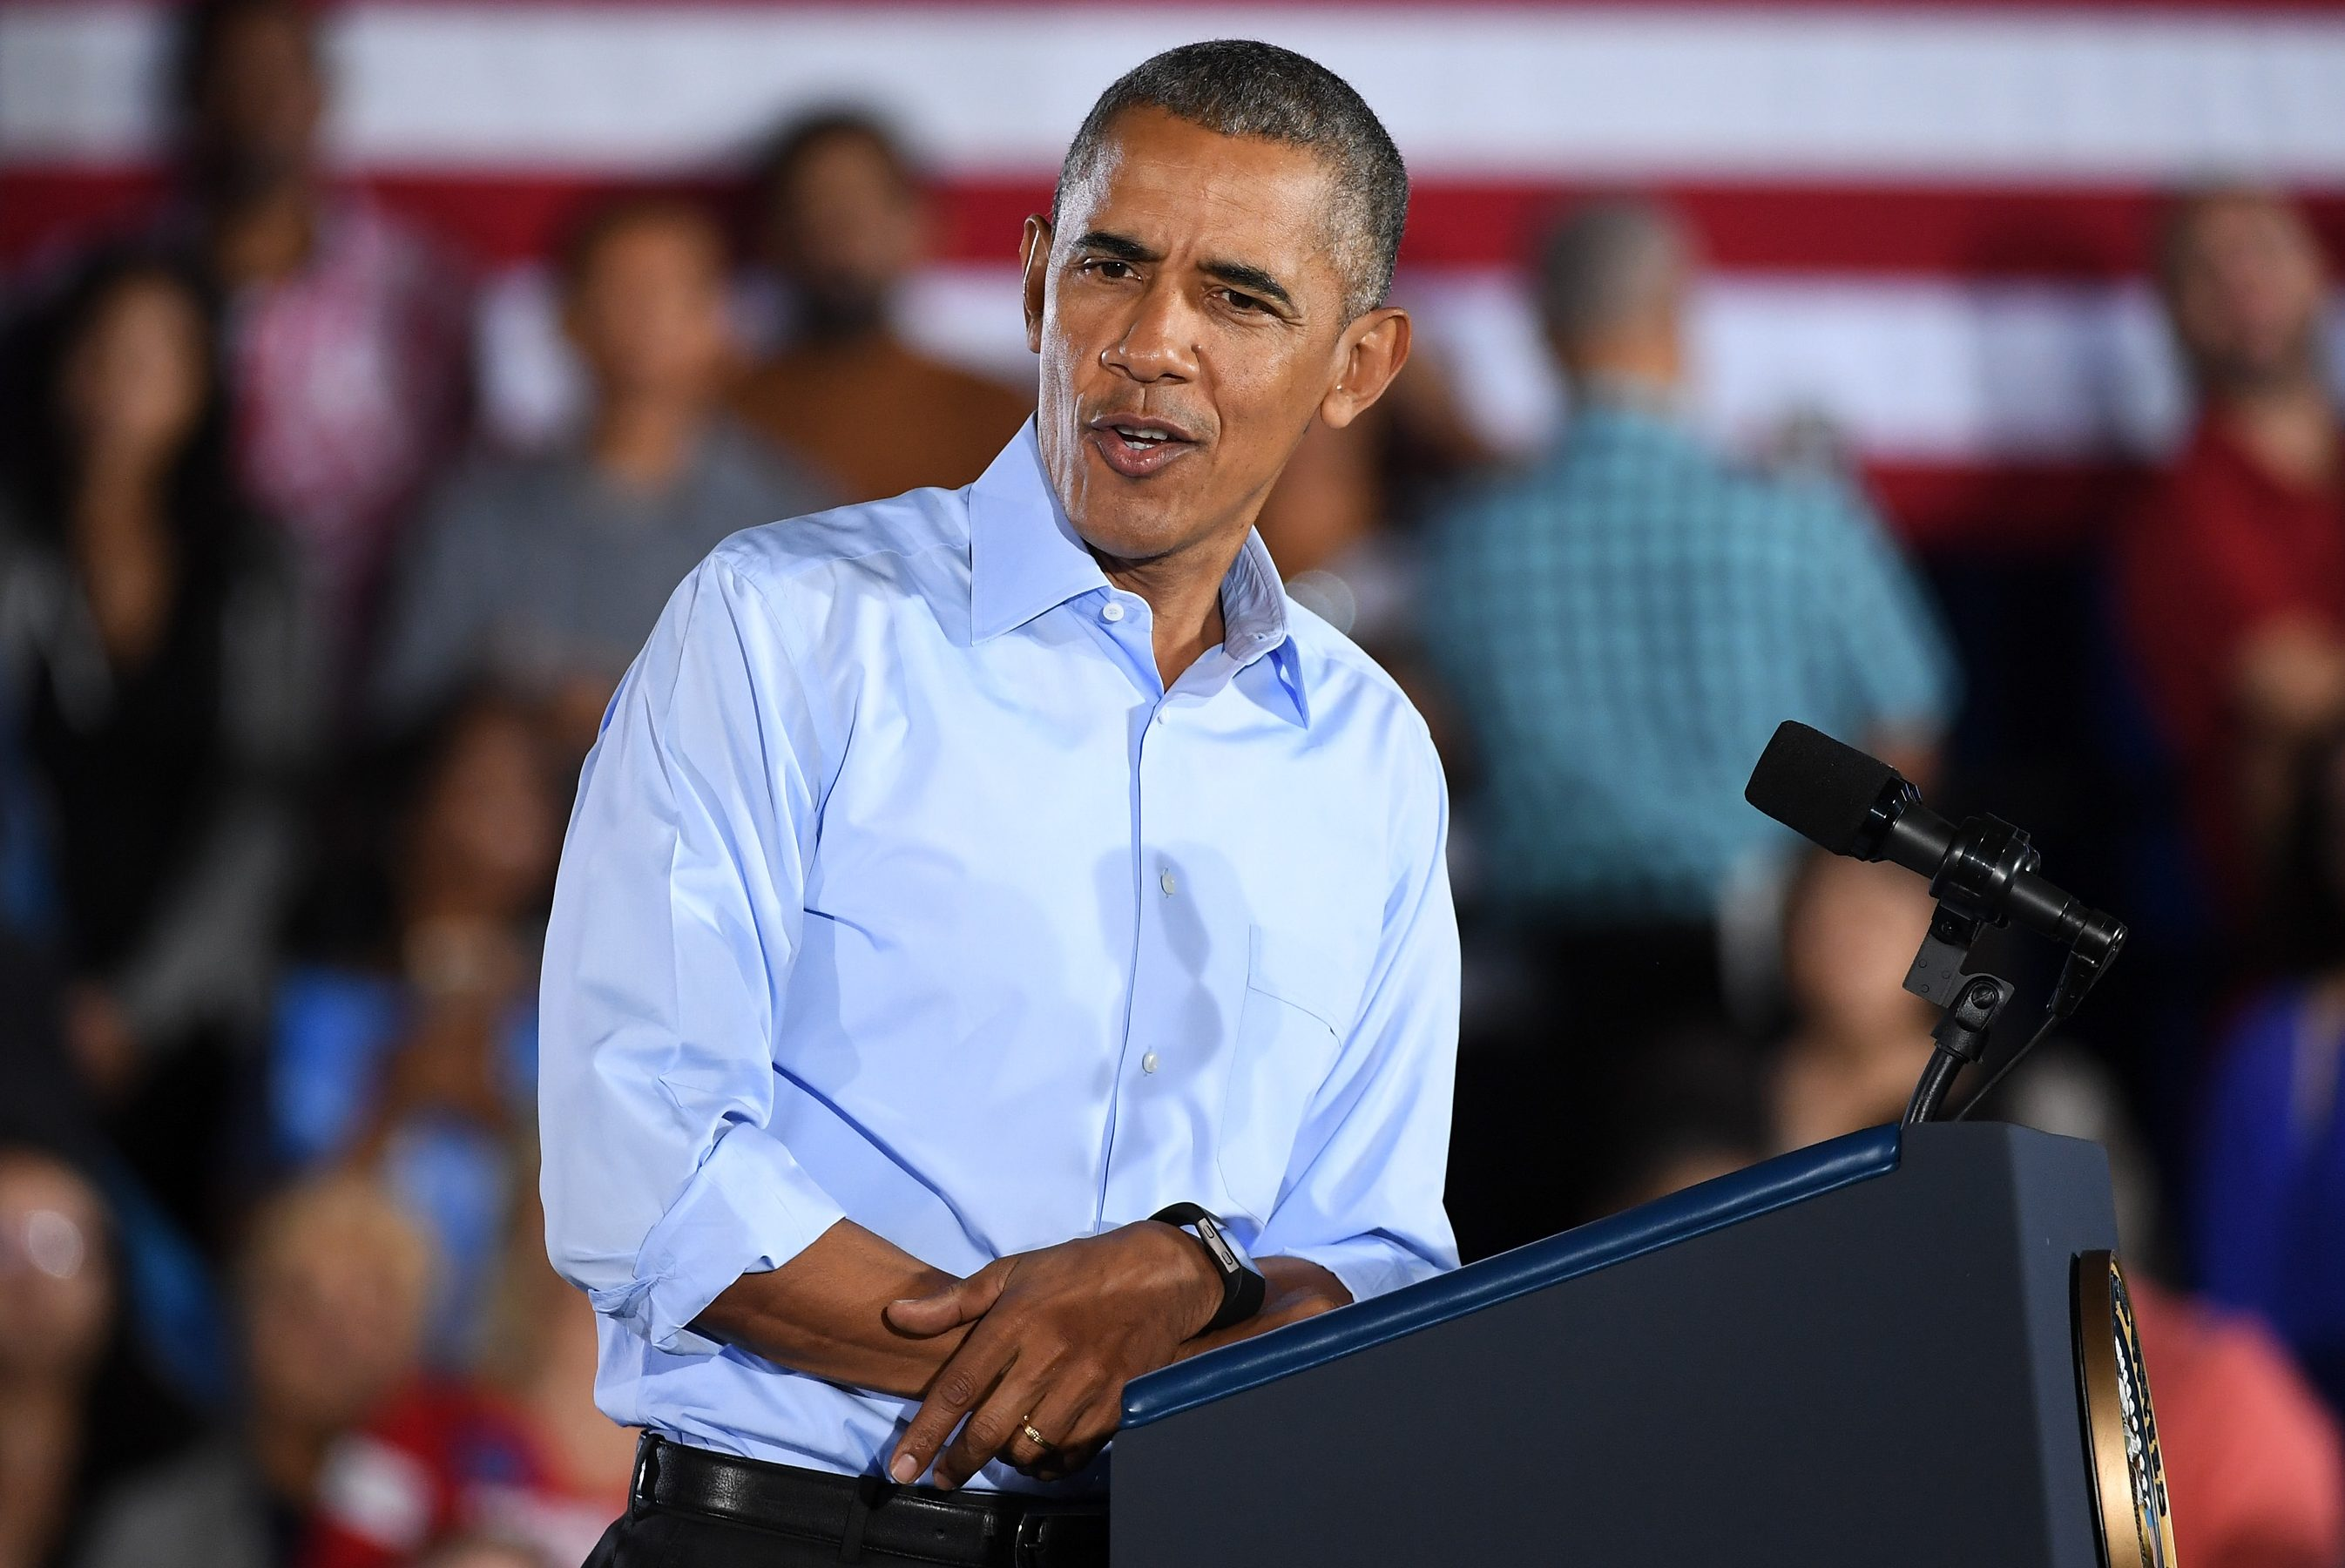 NORTH LAS VEGAS, NV - OCTOBER 23:  U.S. President Barack Obama speaks during a campaign rally for Democratic presidential nominee Hillary Clinton at Cheyenne High School on October 23, 2016 in North Las Vegas, Nevada. Obama urged Nevadans to vote early one day after a record-breaking start to early voting in the swing state with almost 40,000 people going to the polls ahead of the November 8 general election.  (Photo by Ethan Miller/Getty Images)